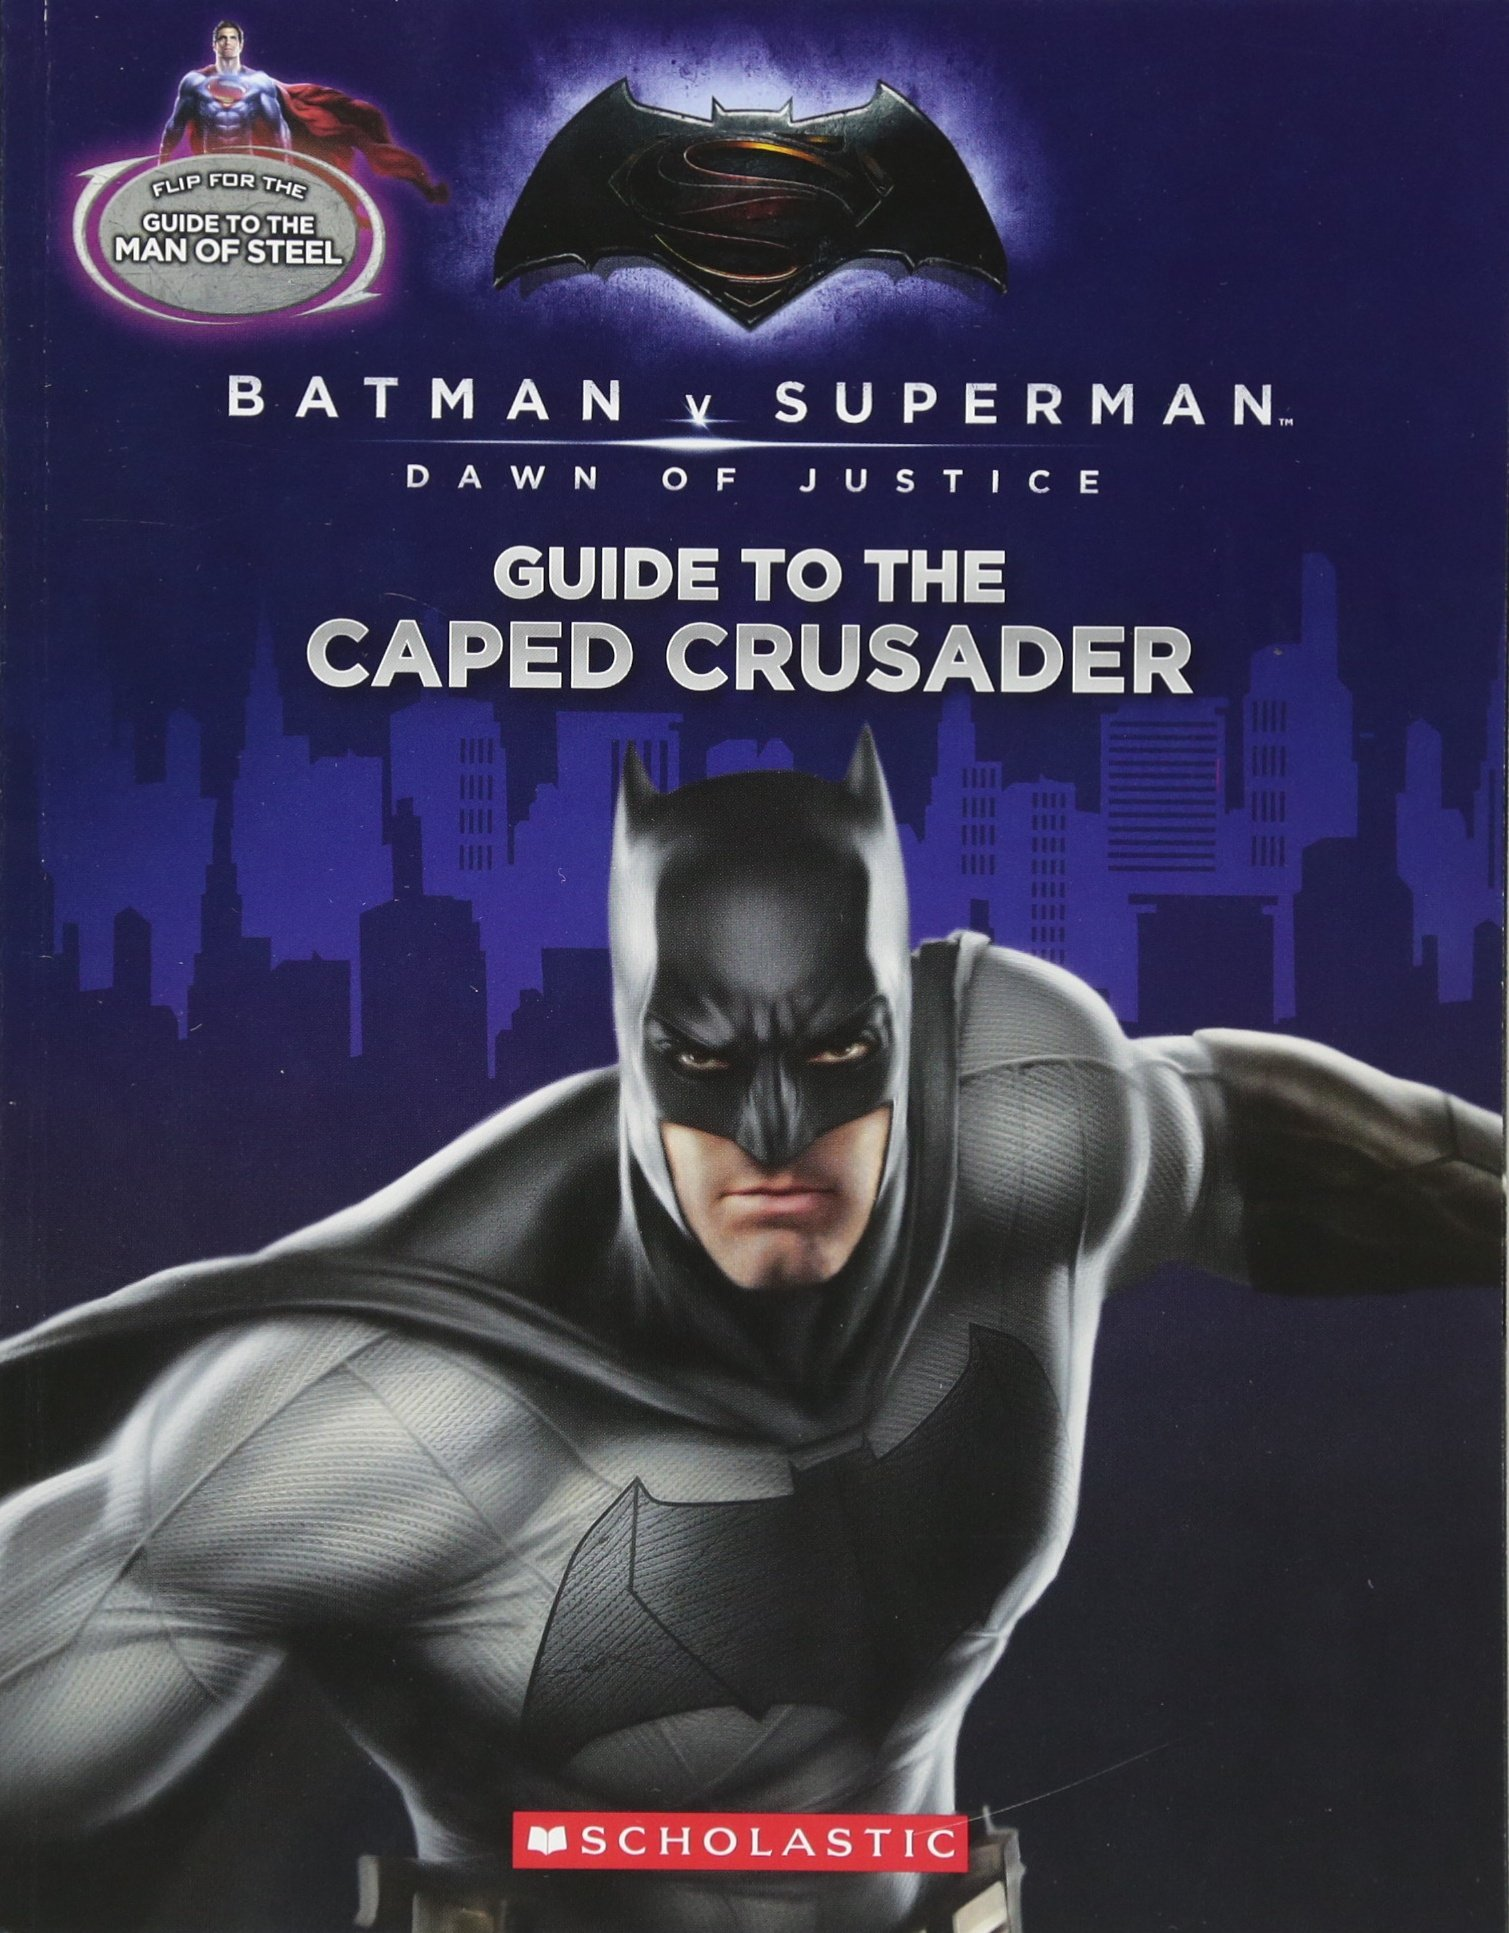 Guide to the Caped Crusader/Guide to the Man of Steel